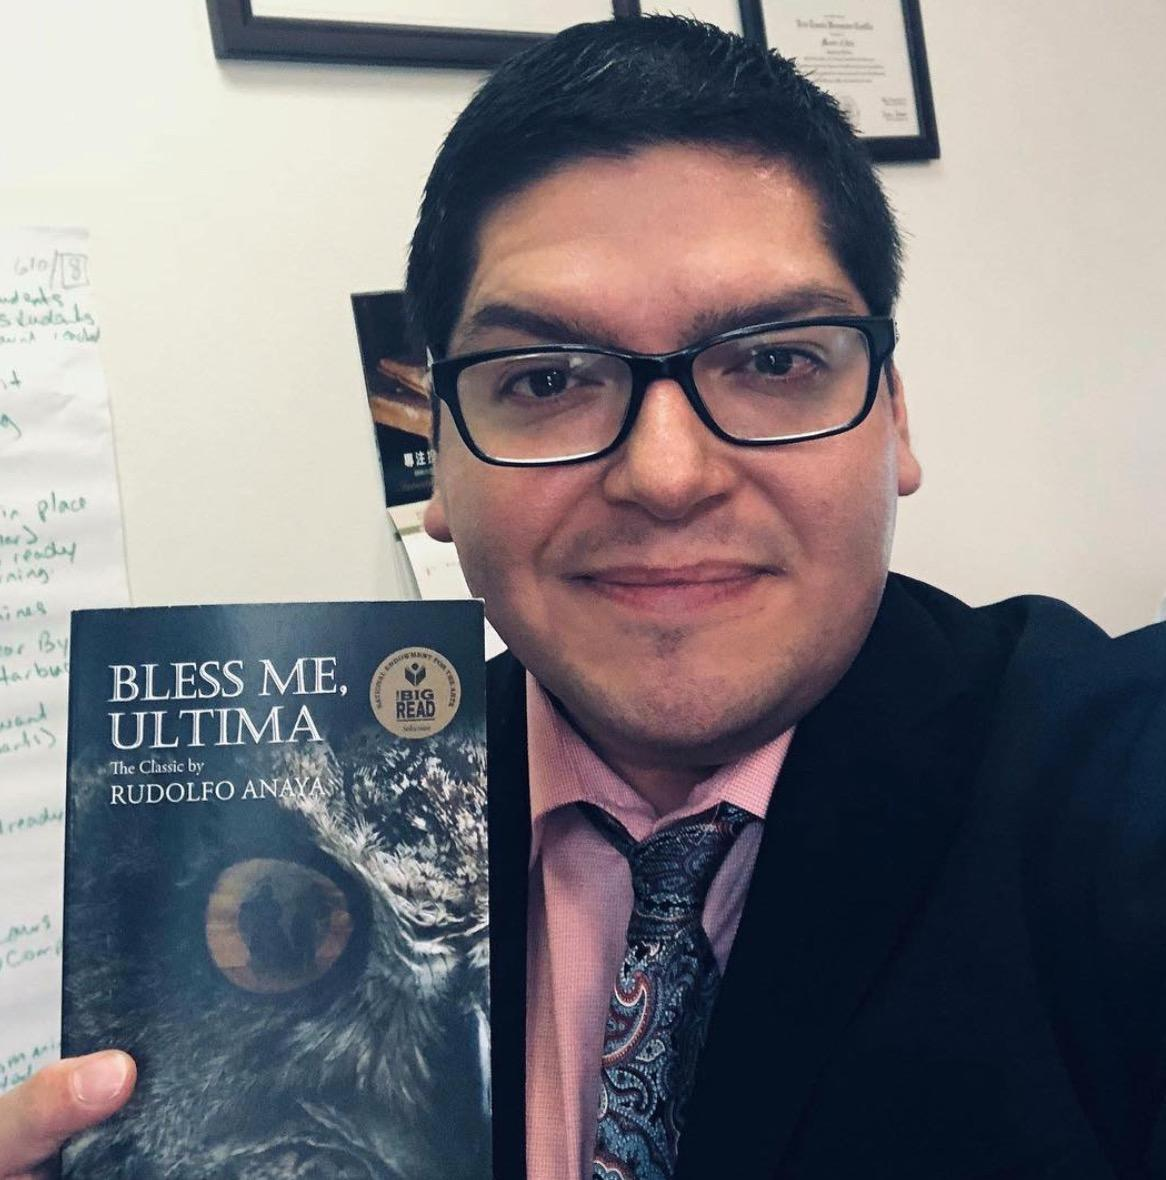 Eric Castillo hold a copy of Bless Me, Ultima